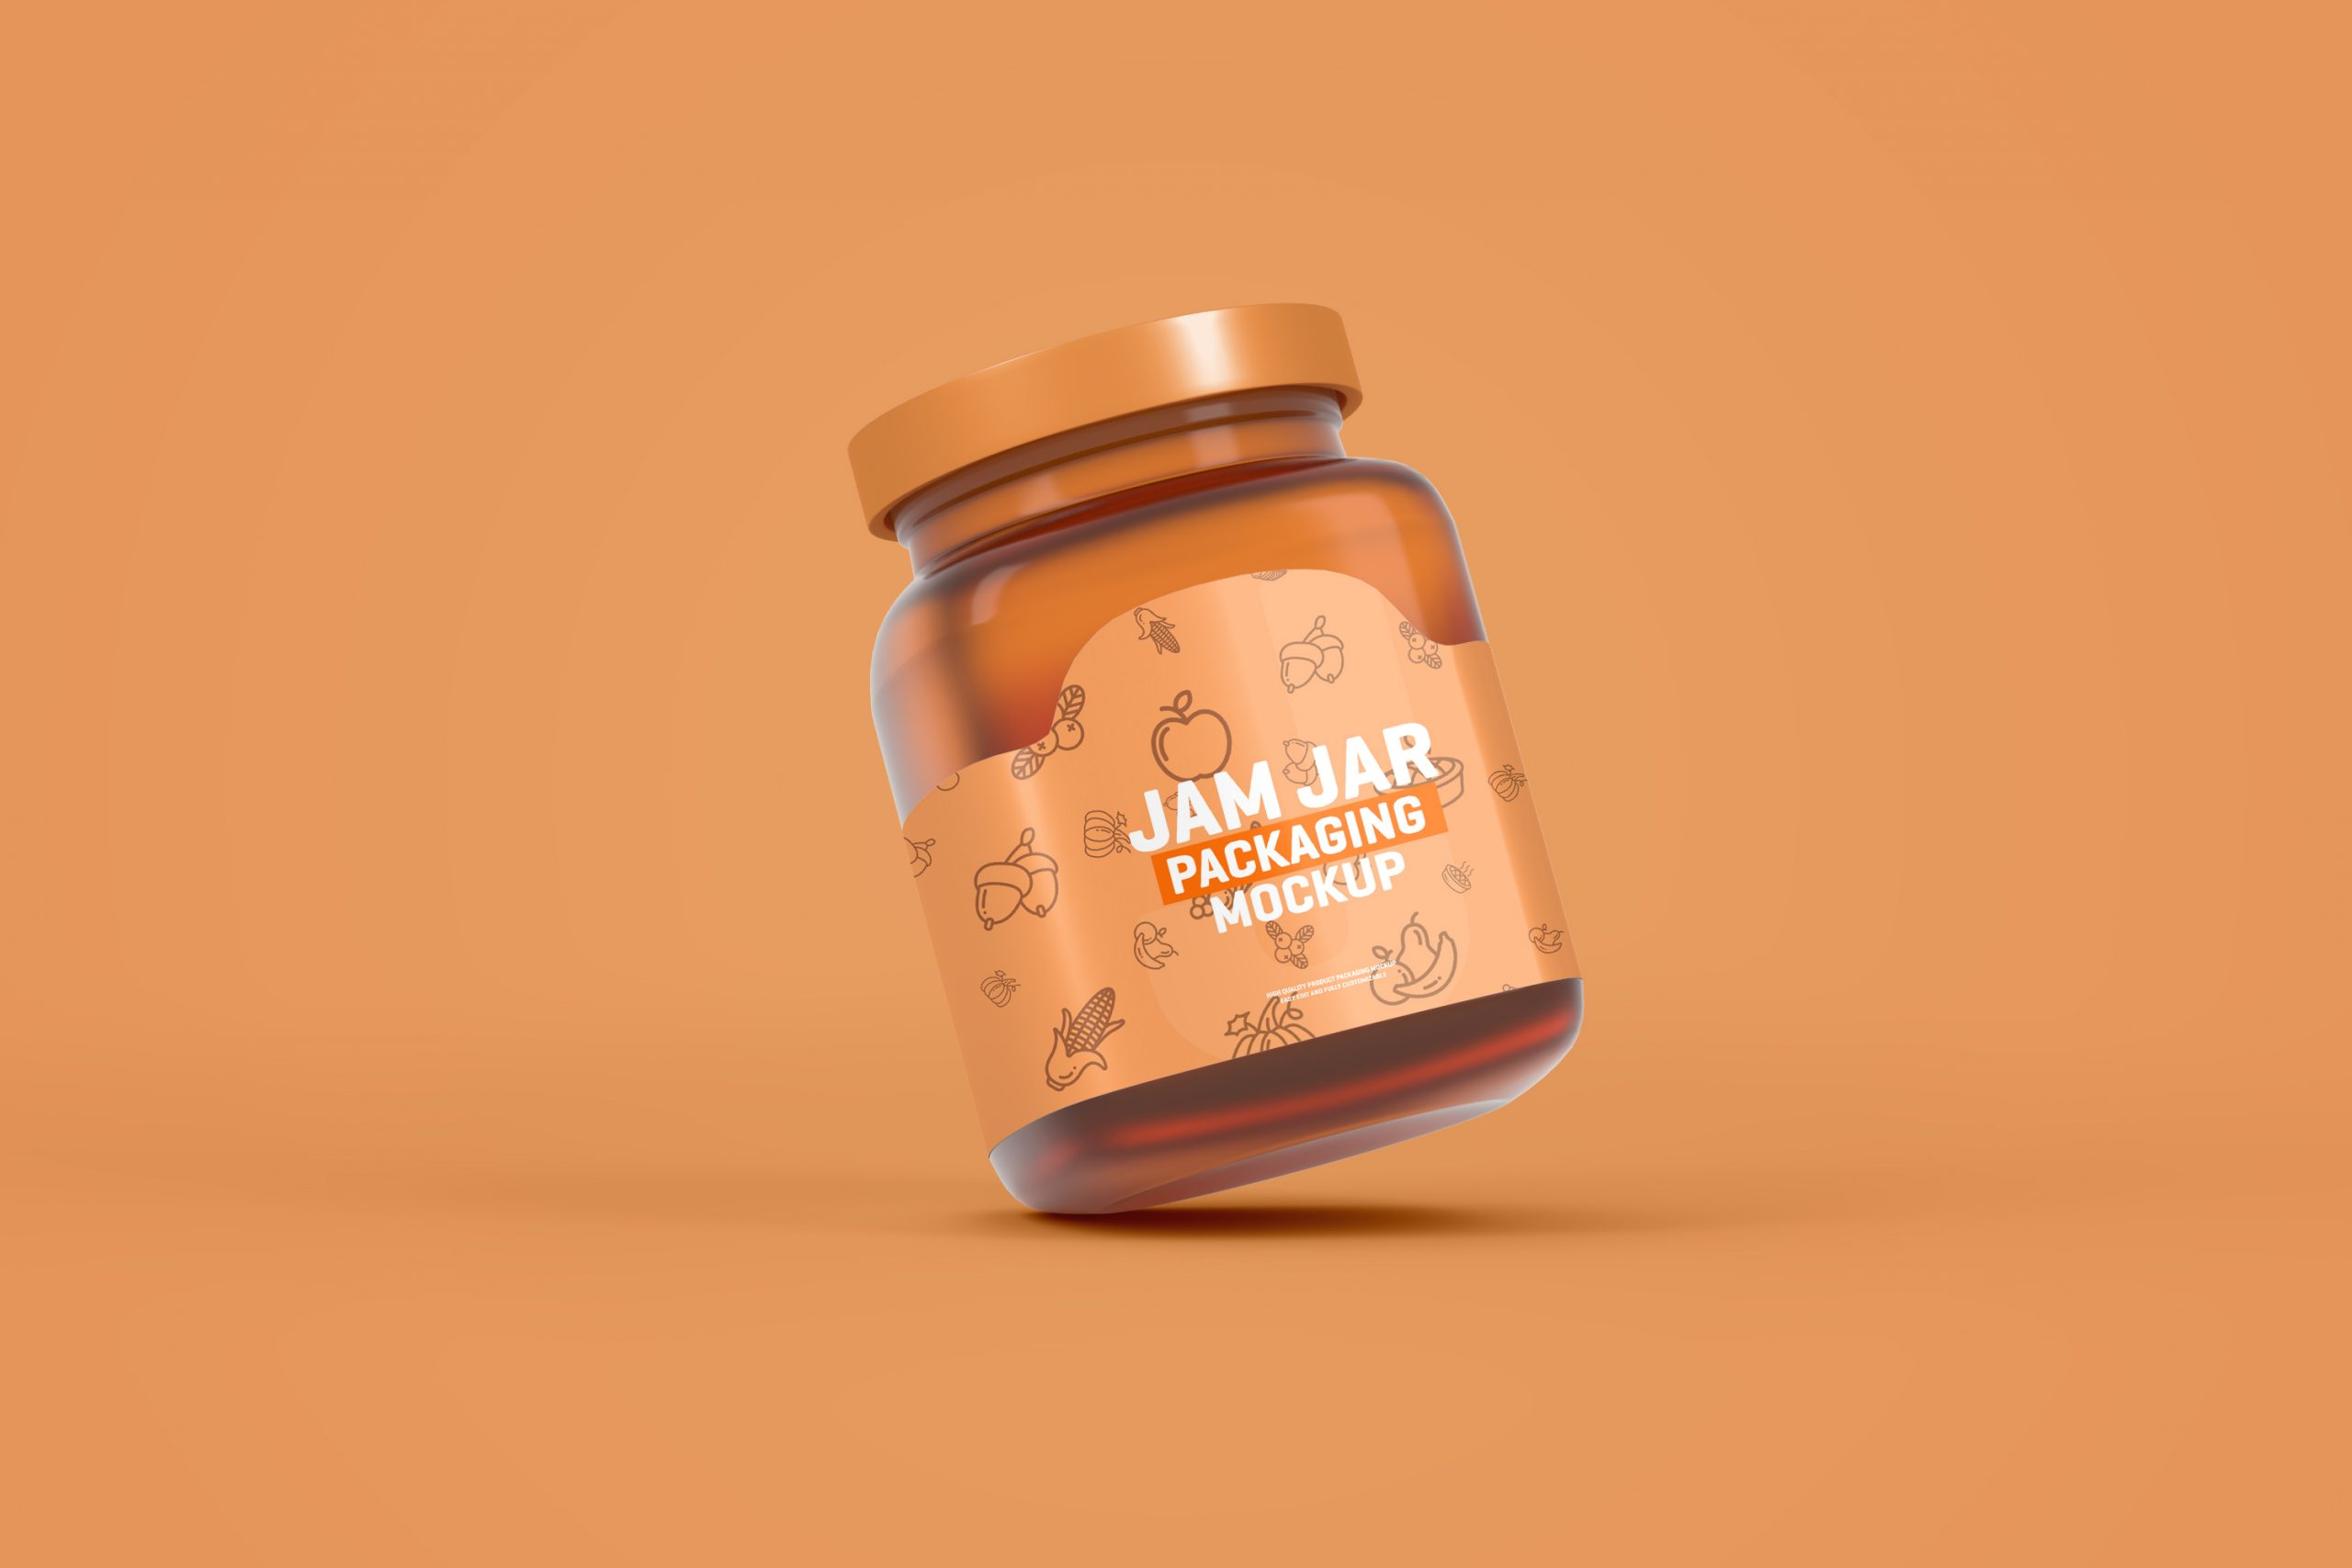 Free Glass Jam Jar Packaging Mockup